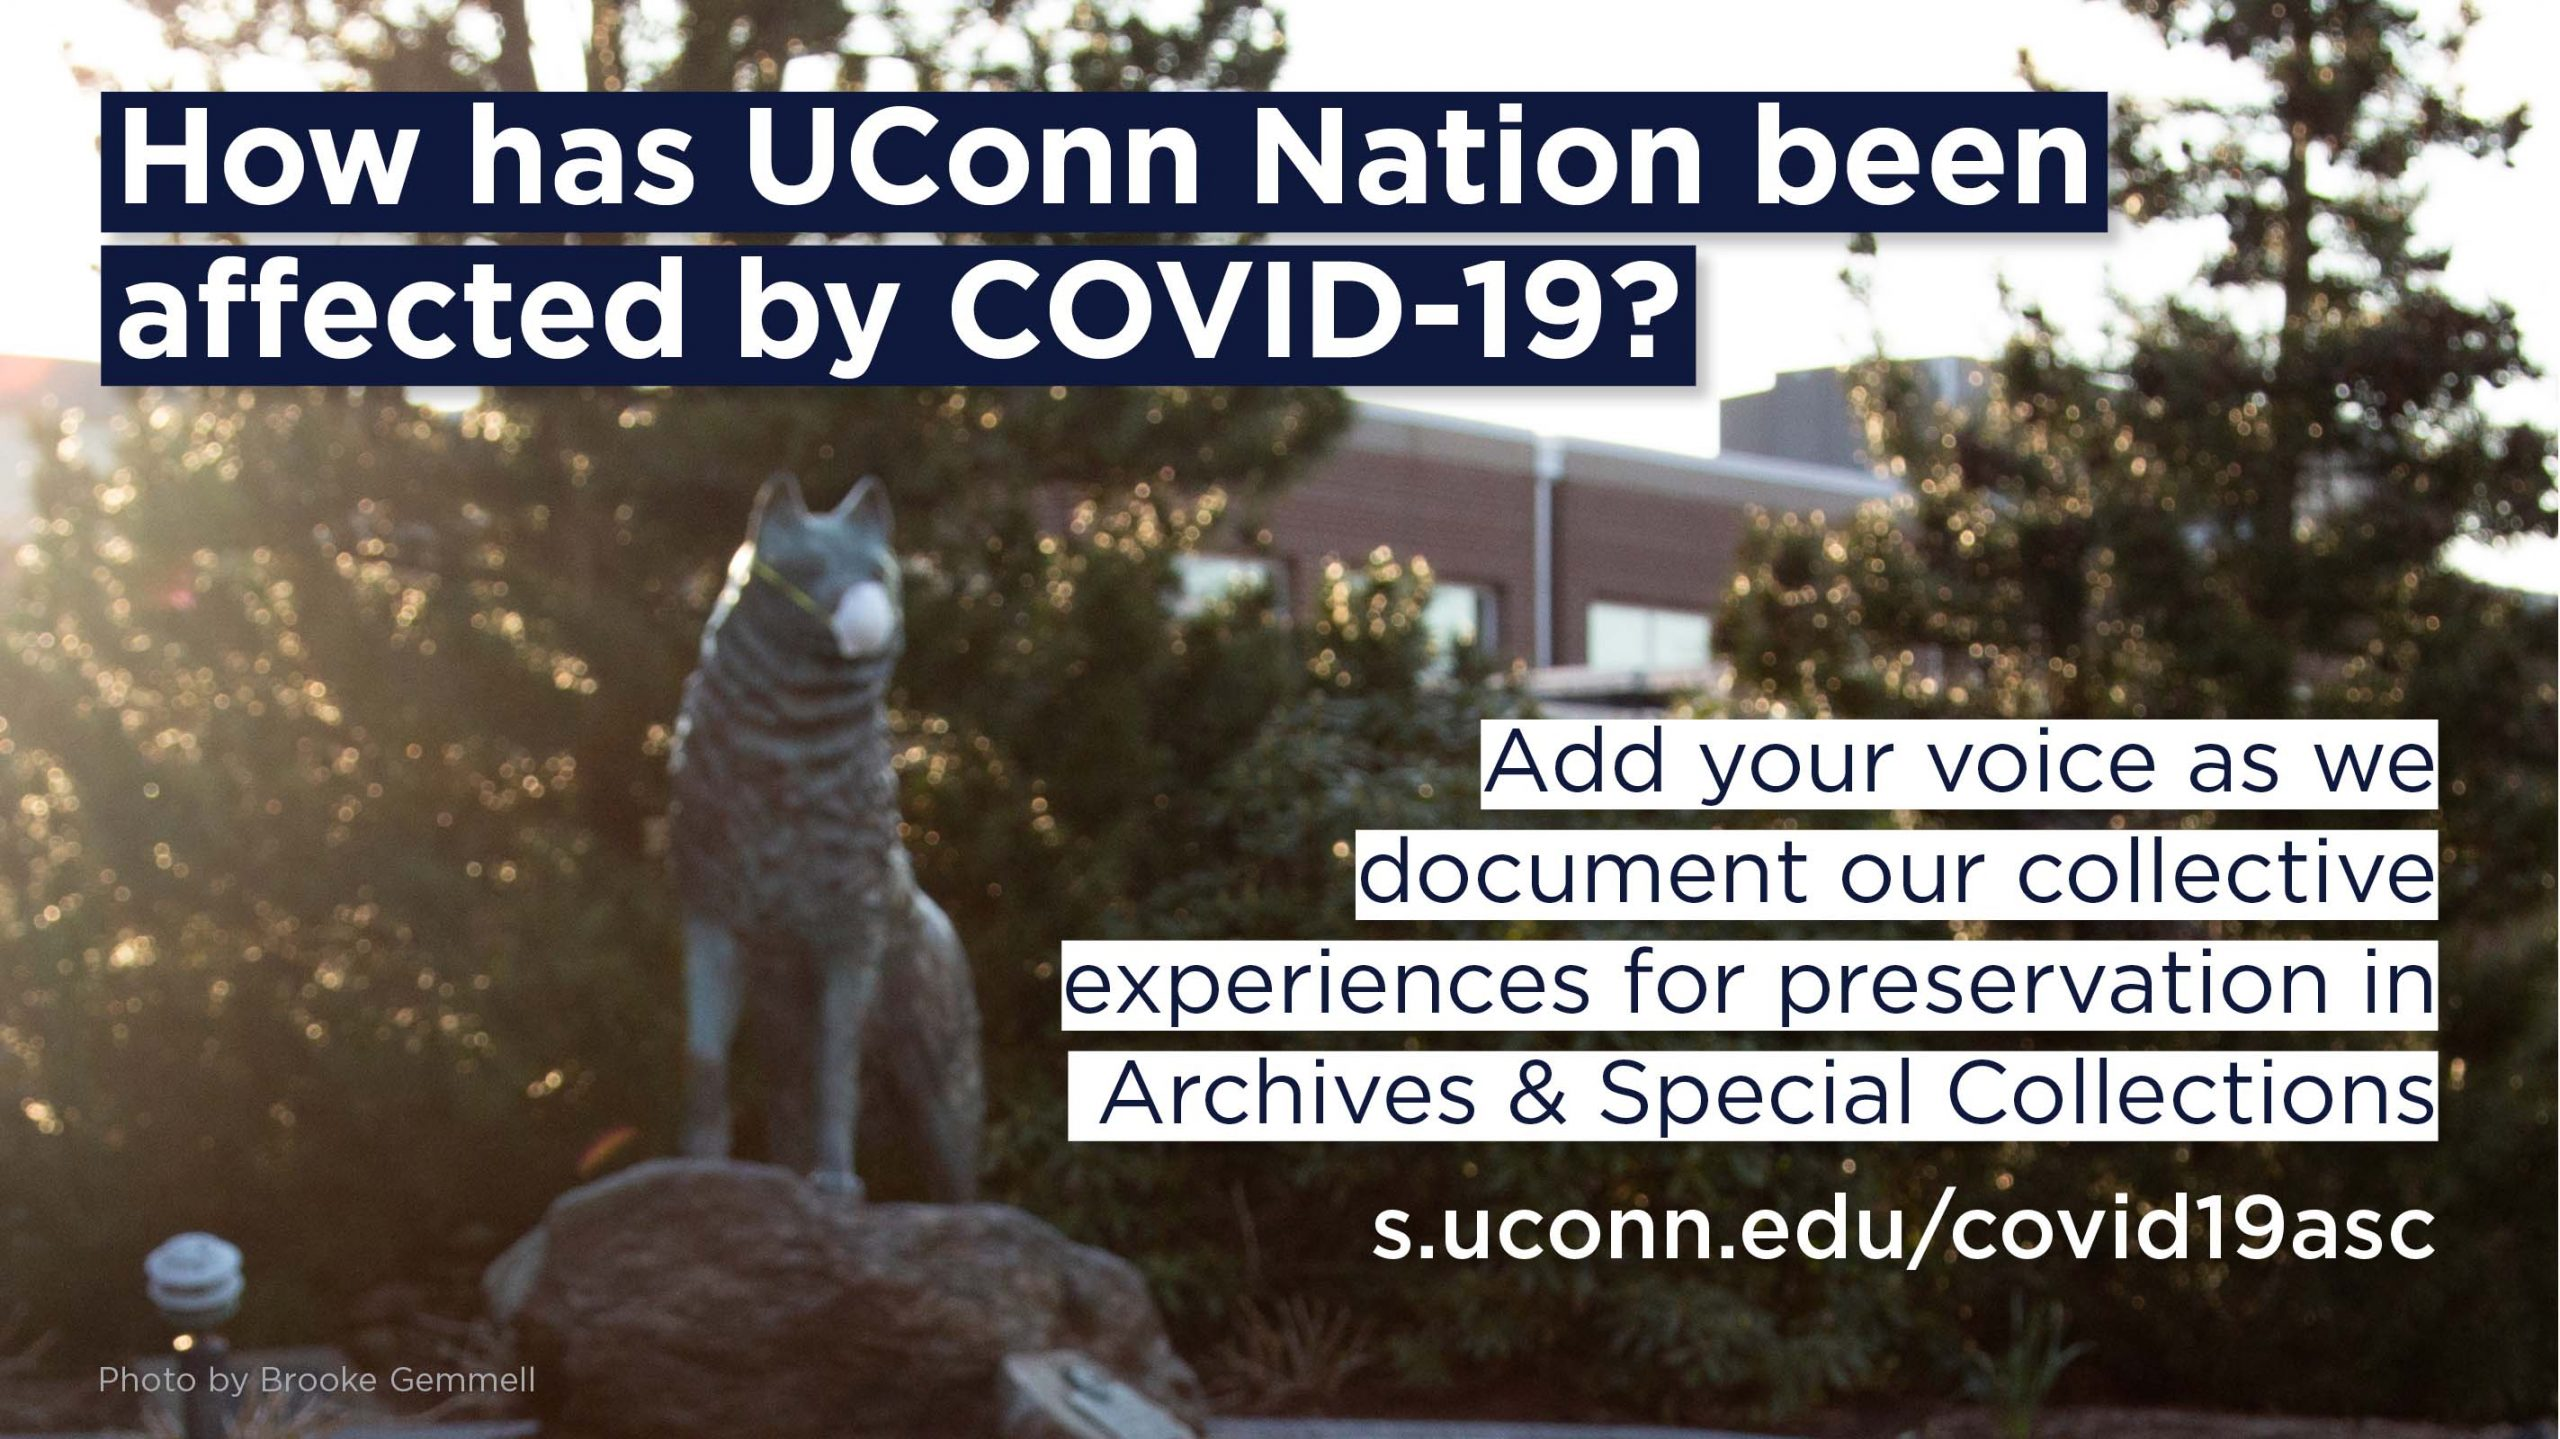 How has UConn Nation been affected by COVID-19? Add your voice as we document our collective experiences for preservation in Archives & Special Collections s.uconn.edu/covid19asc